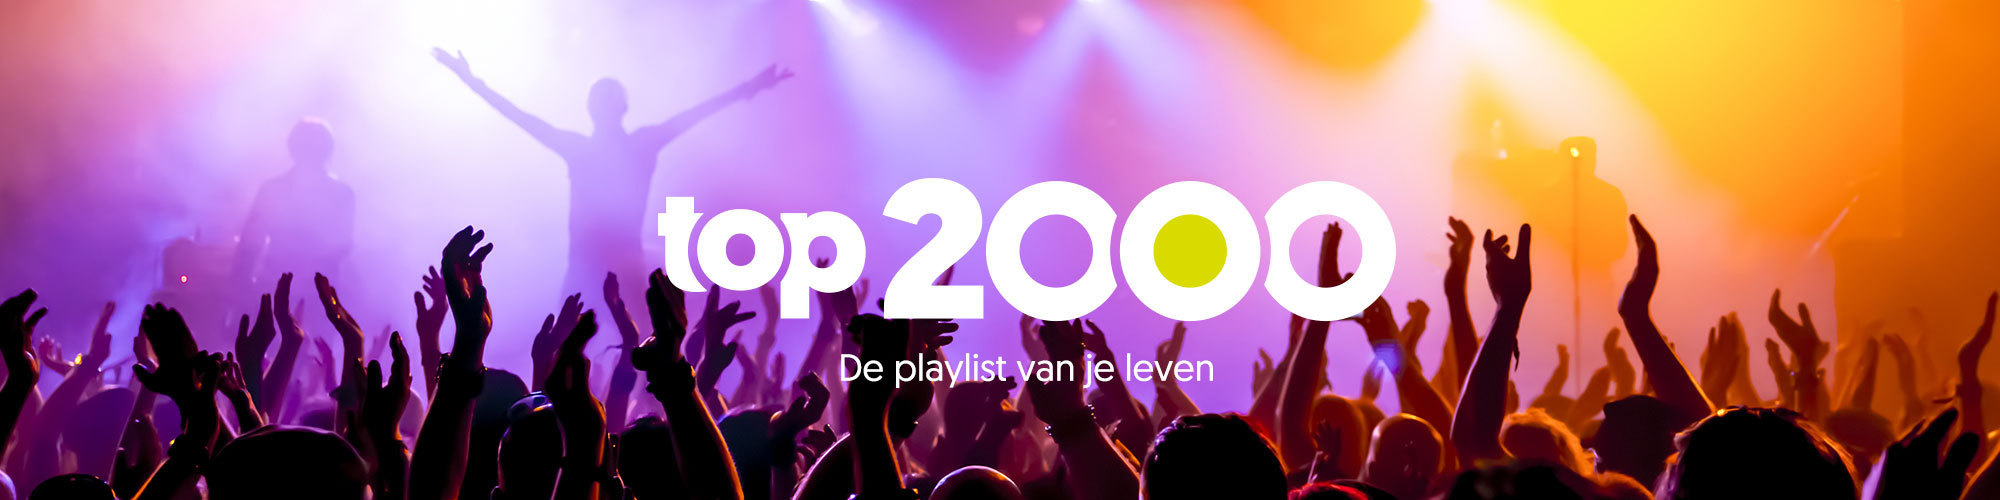 Joe carrousel top2000 finaal playlistvanjeleven 3